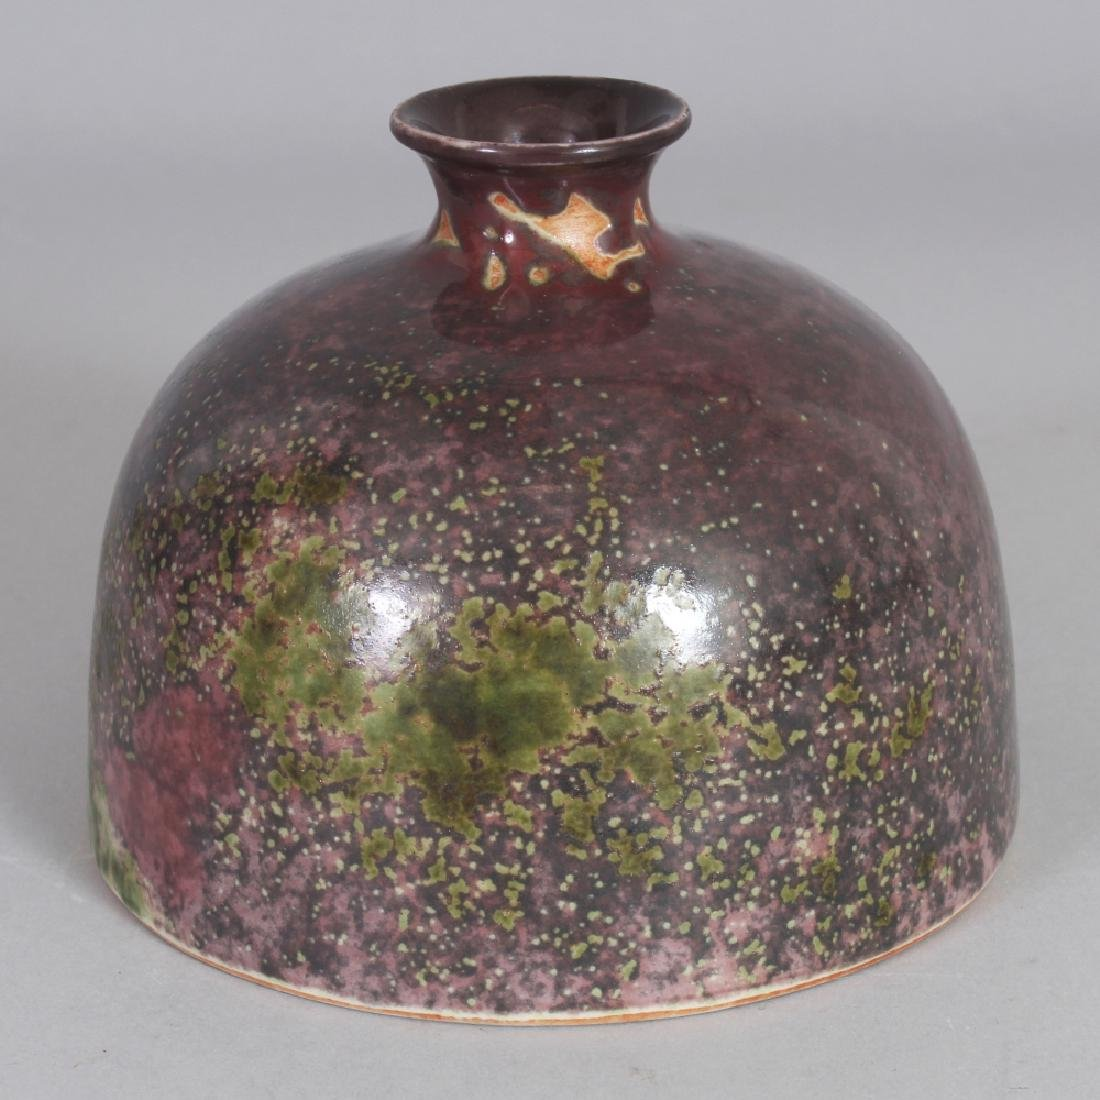 A CHINESE PORCELAIN BEEHIVE PORCELAIN WATER POT, the